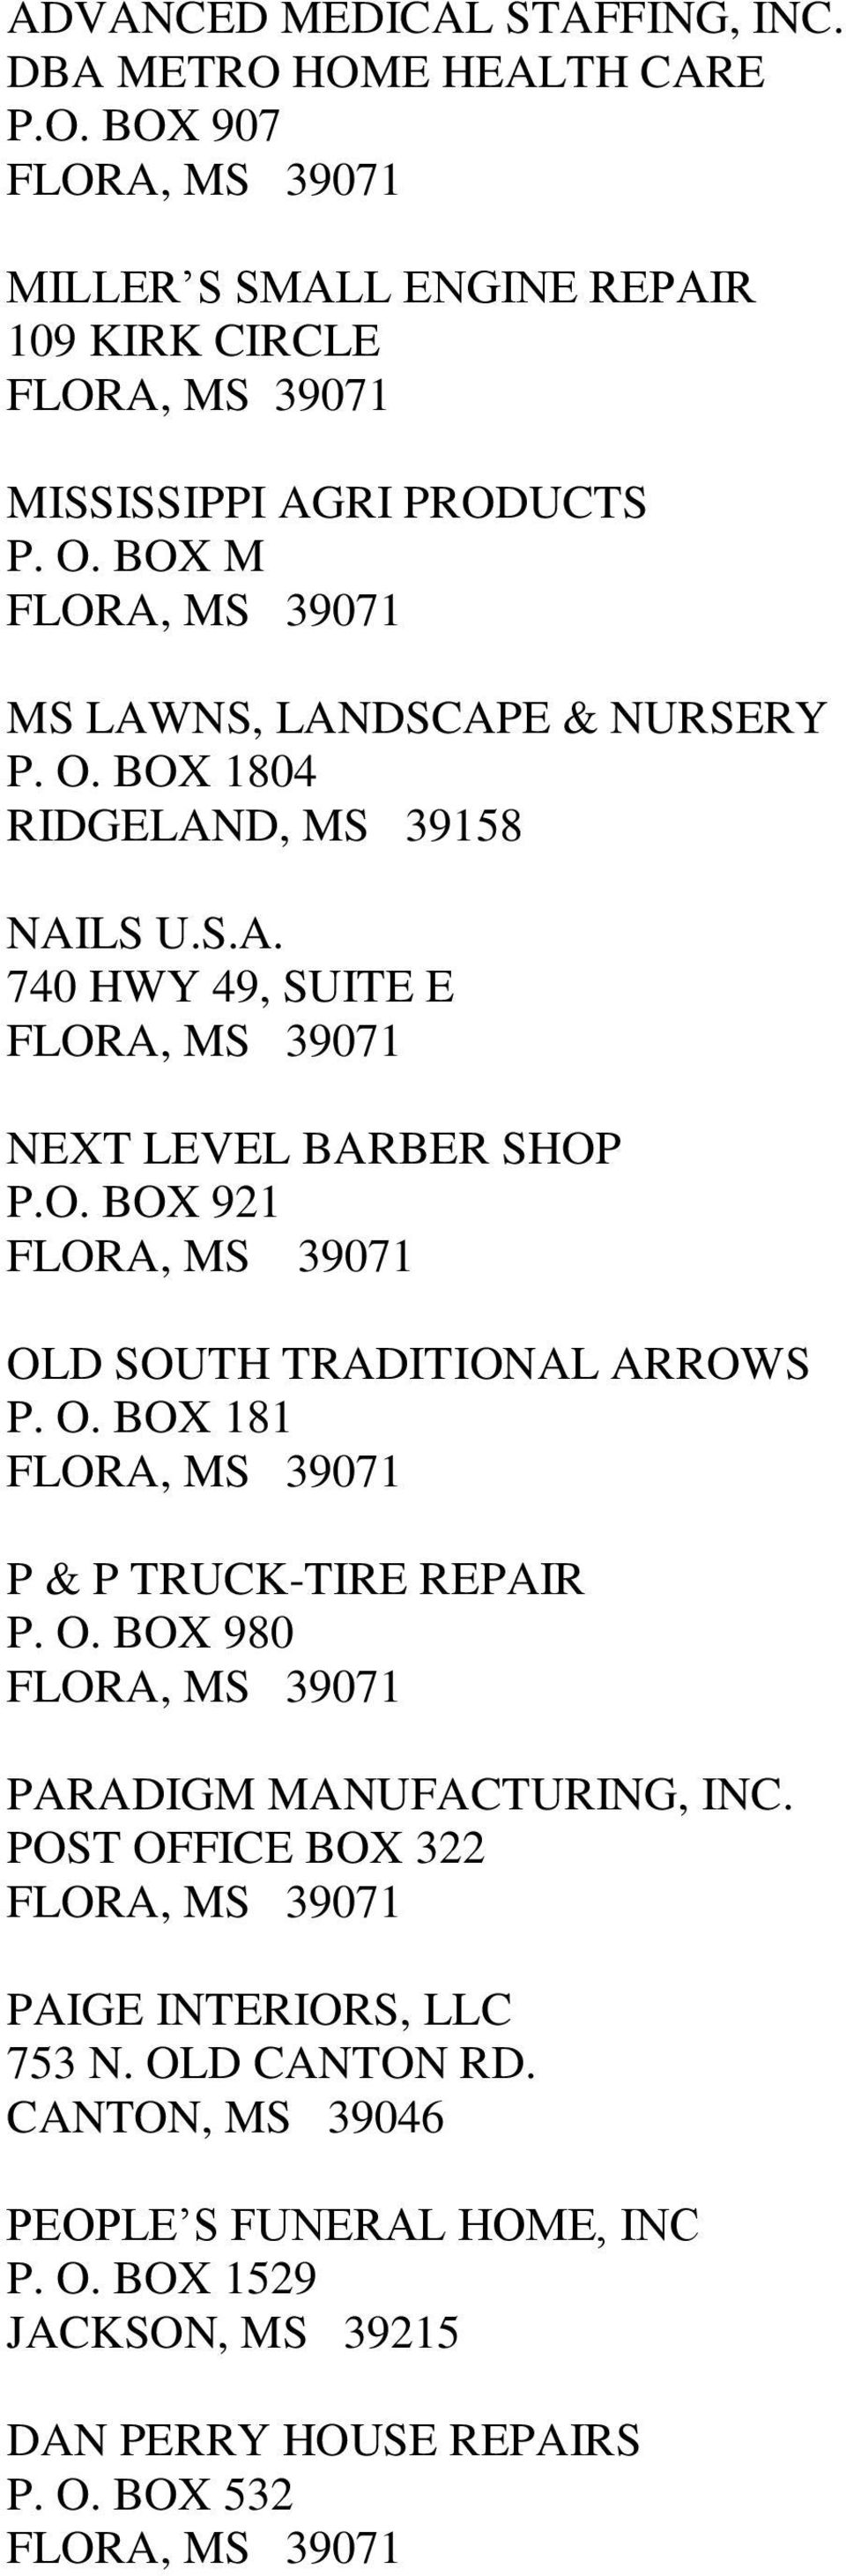 O. BOX 181 P & P TRUCK-TIRE REPAIR P. O. BOX 980 PARADIGM MANUFACTURING, INC. POST OFFICE BOX 322 PAIGE INTERIORS, LLC 753 N. OLD CANTON RD.